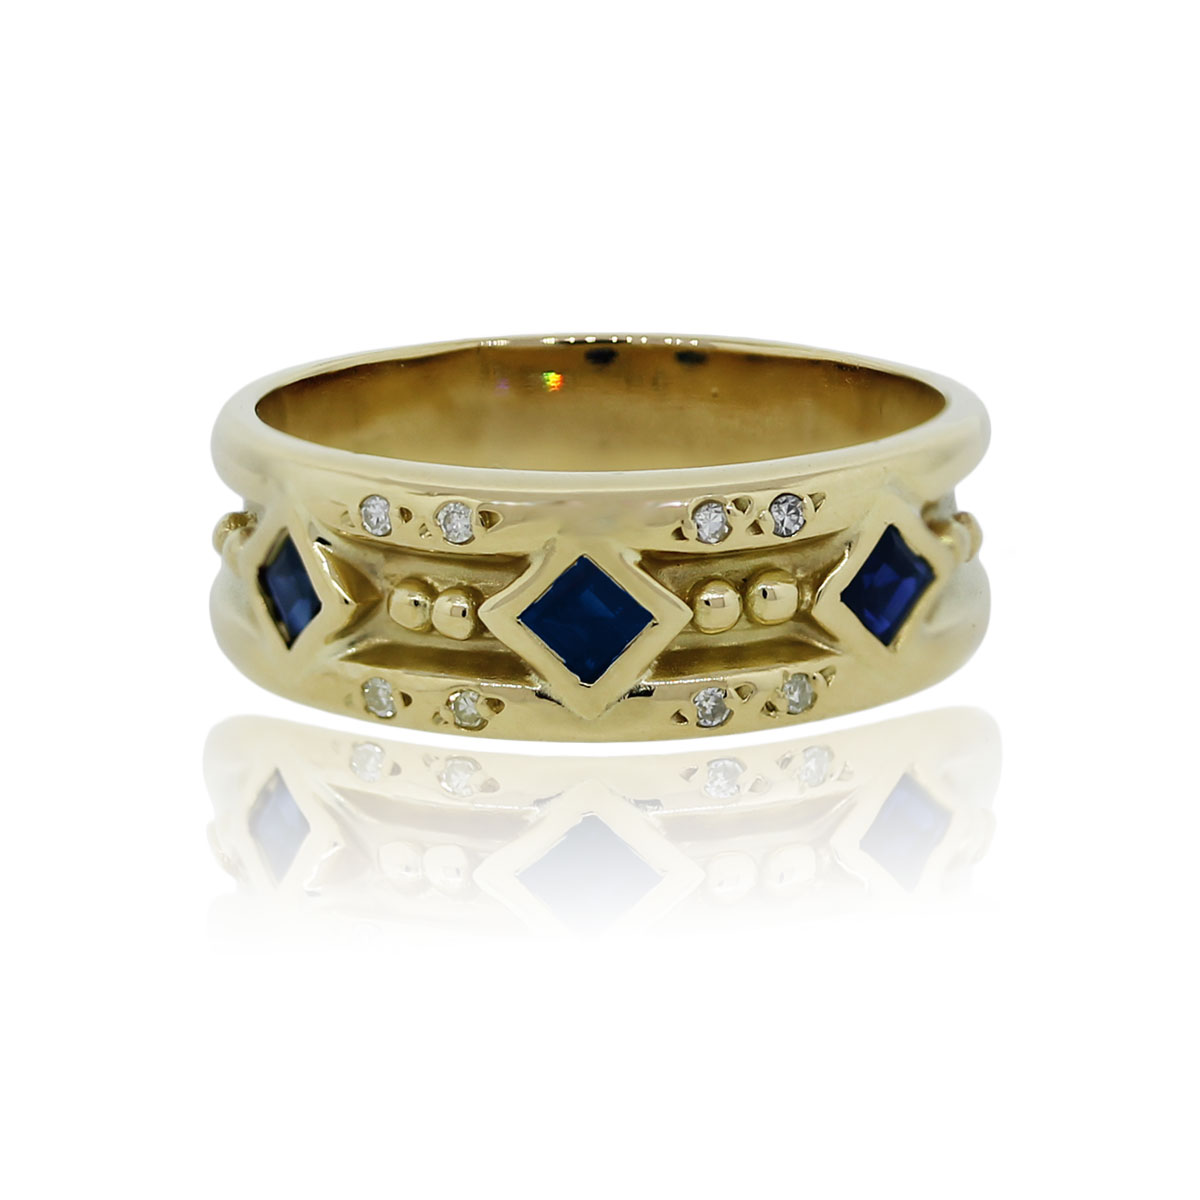 You are viewing this 18k Yellow Gold Princess Cut Sapphire and Diamond Cocktail Ring!